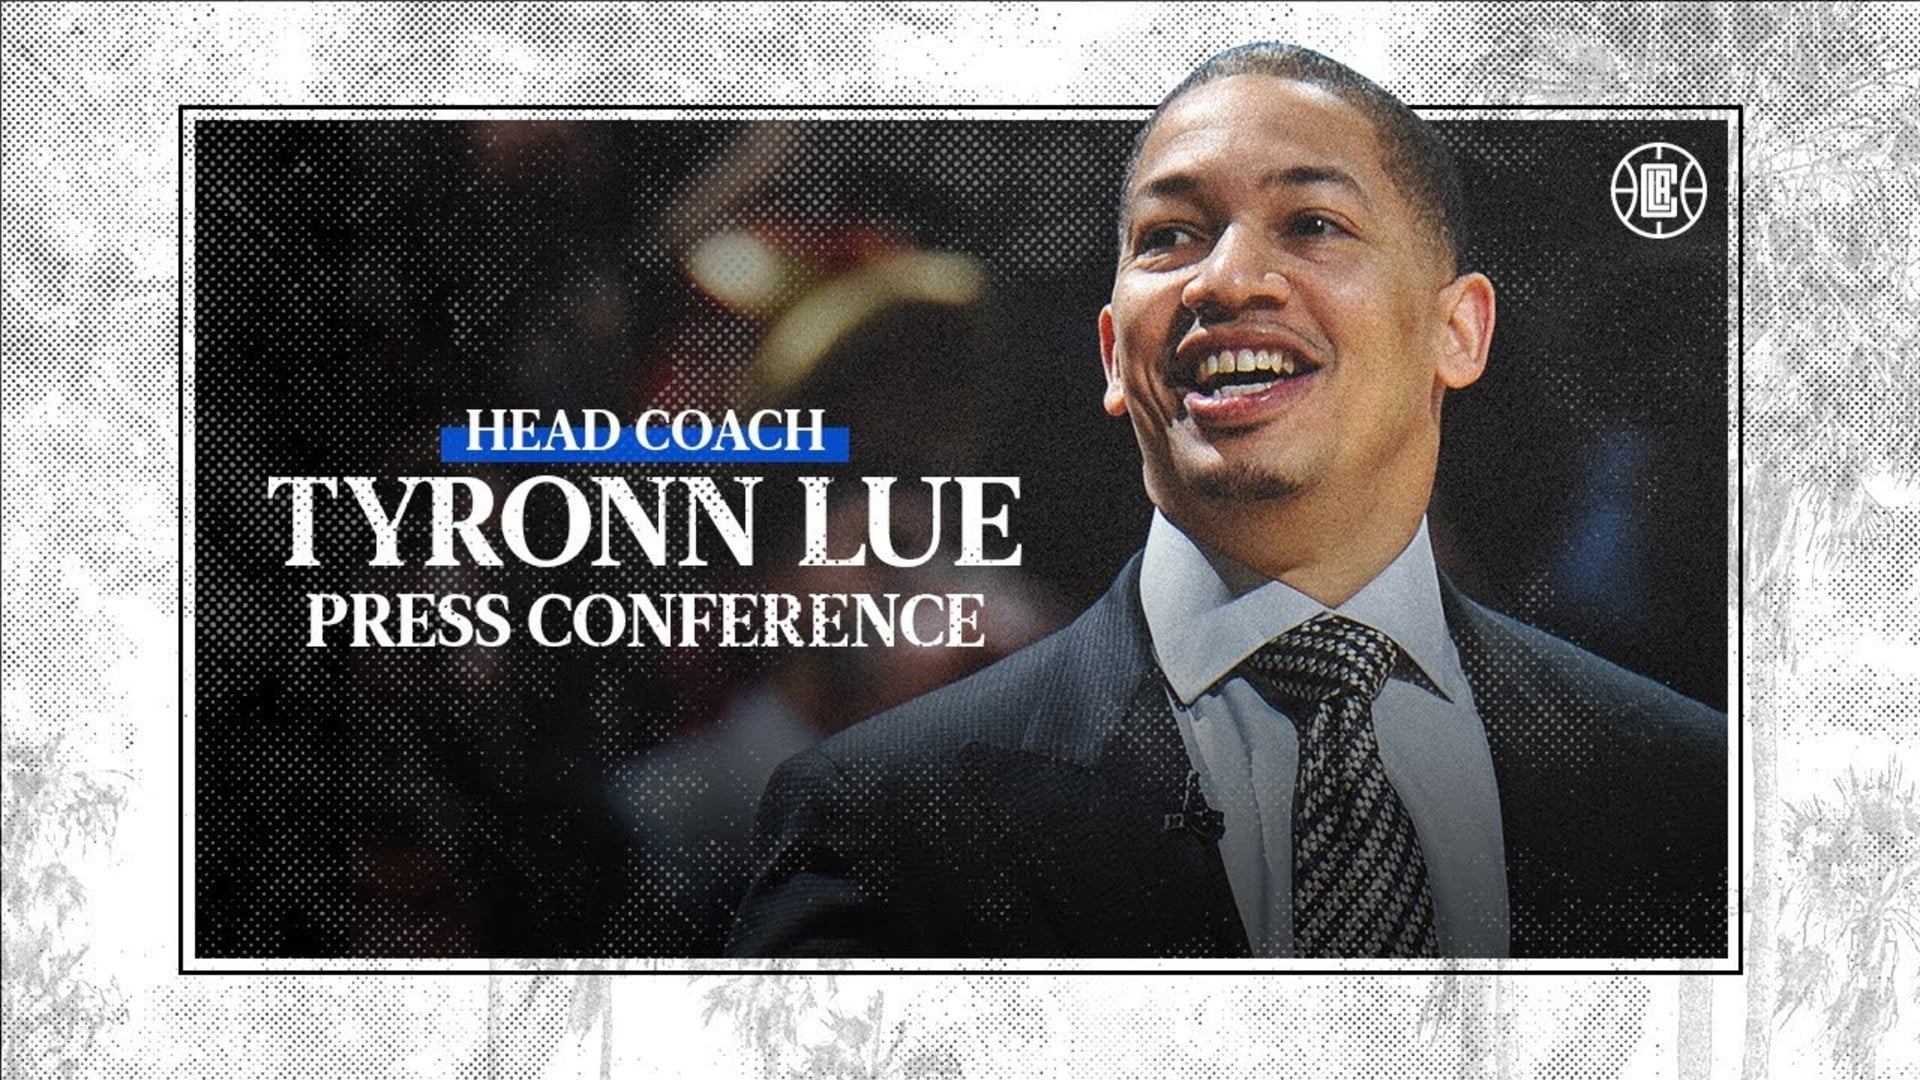 Head Coach Tyronn Lue Introductory Press Conference | LA Clippers